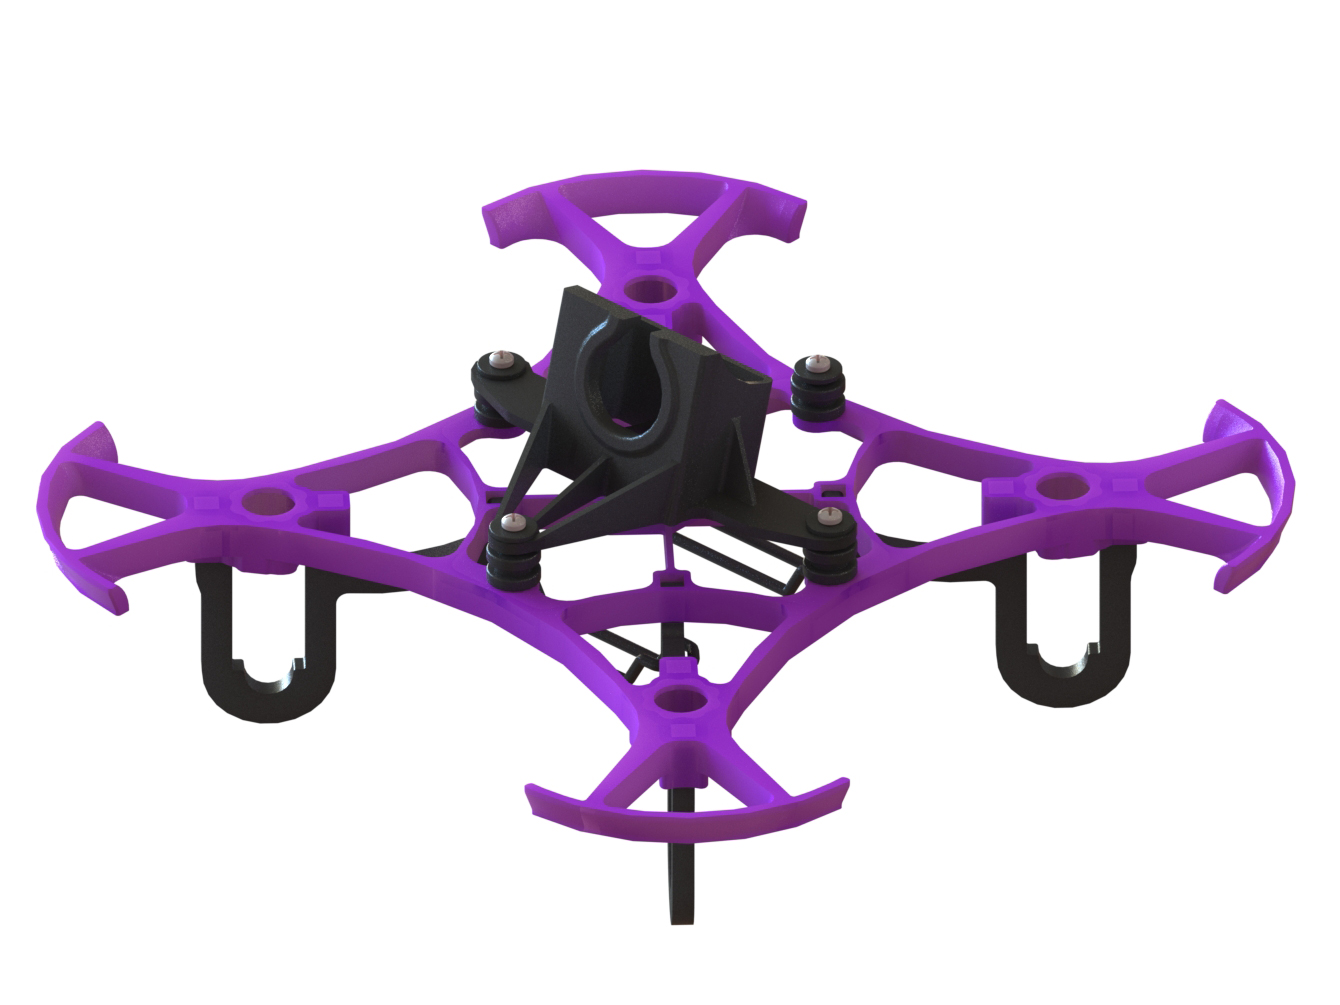 LX2411-6 - Pika 65 FPV Racer, Purple Color